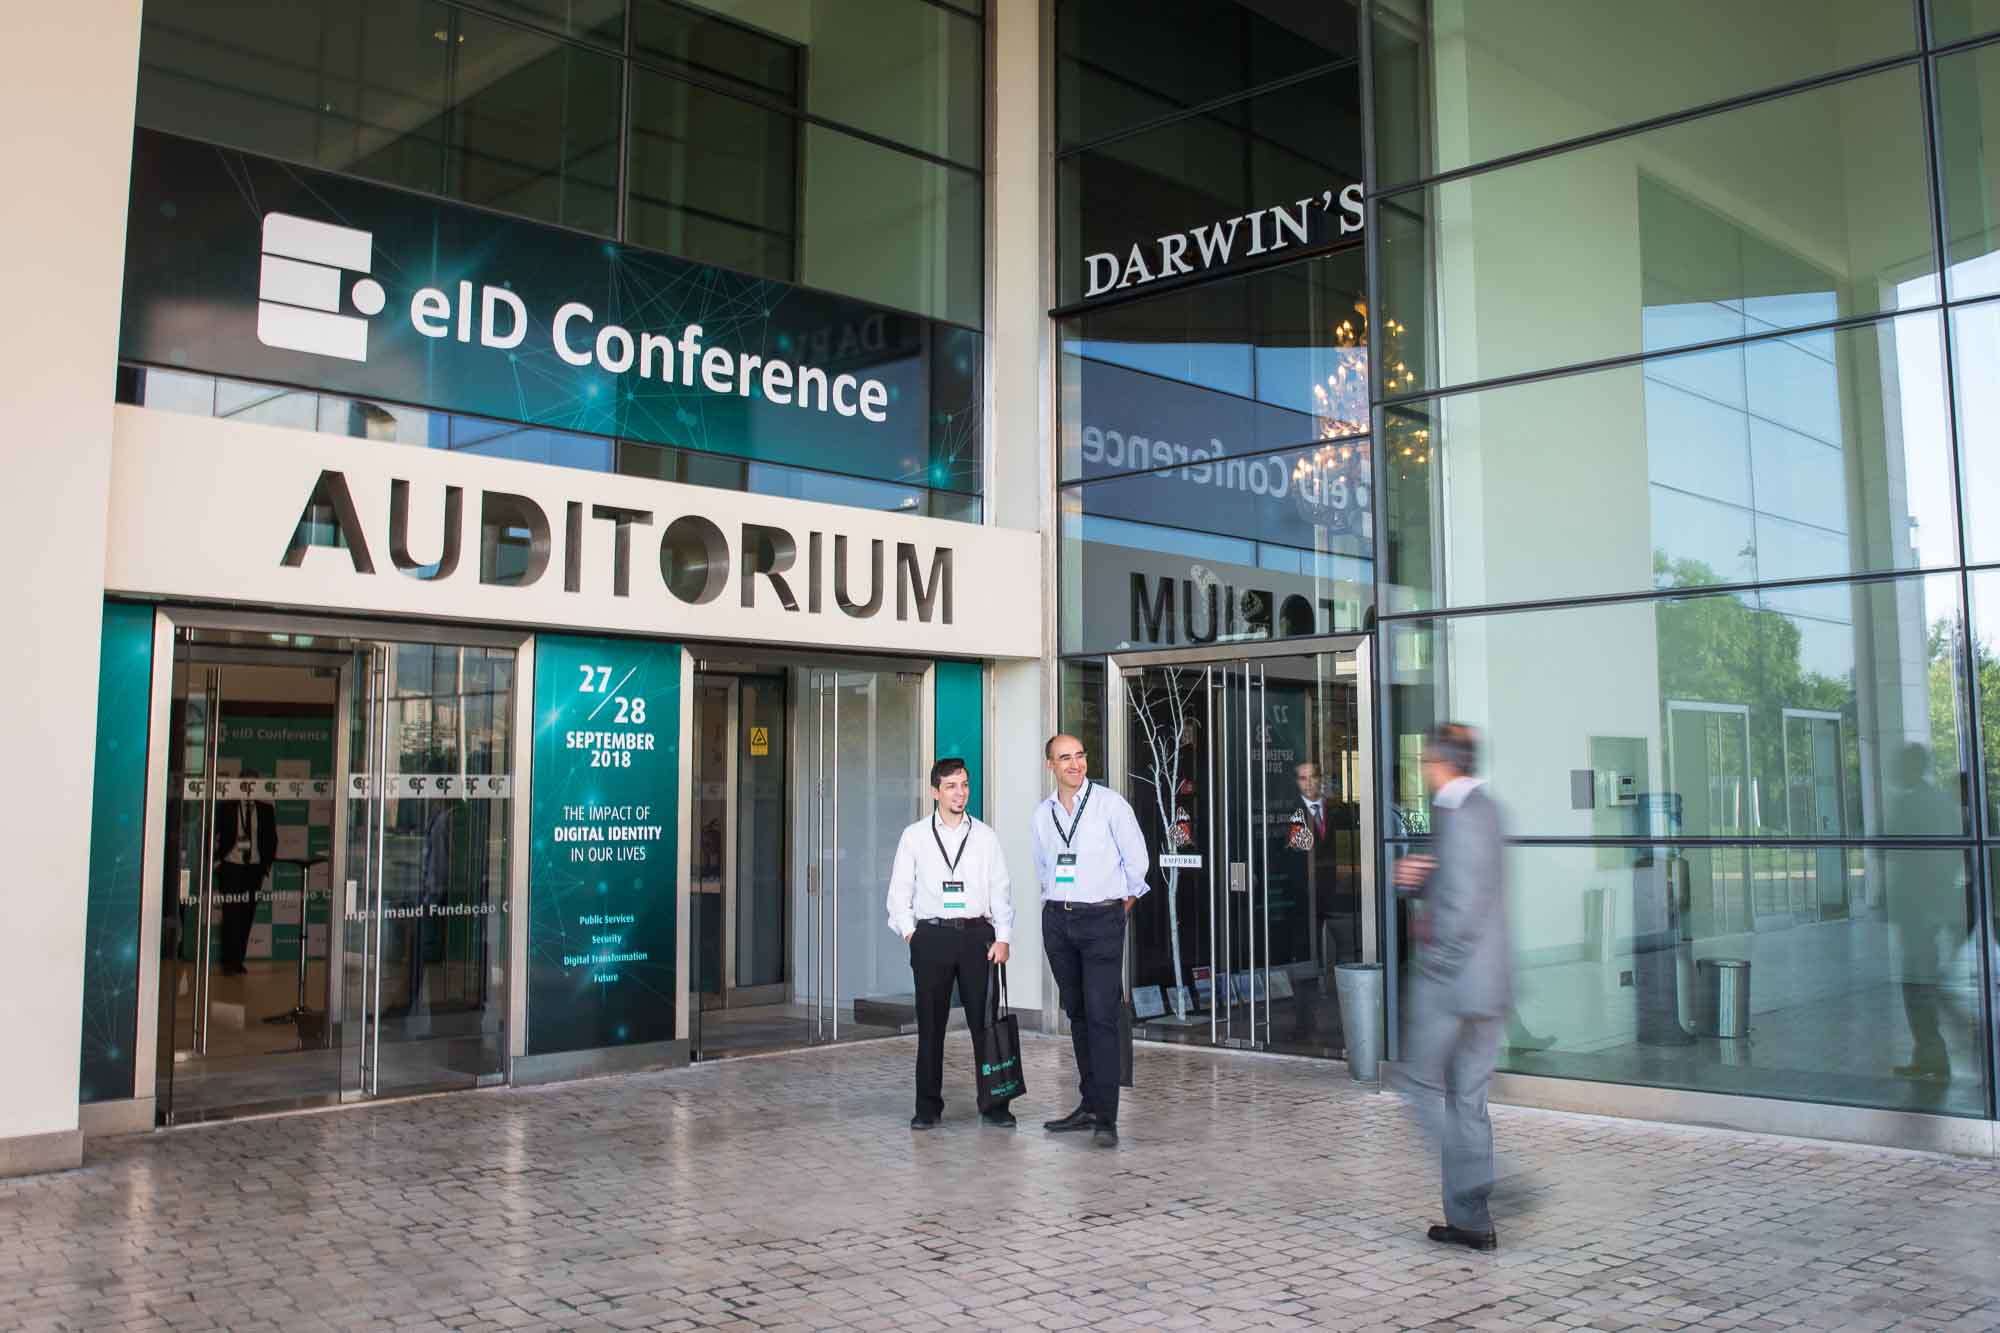 eID Conference Entrance